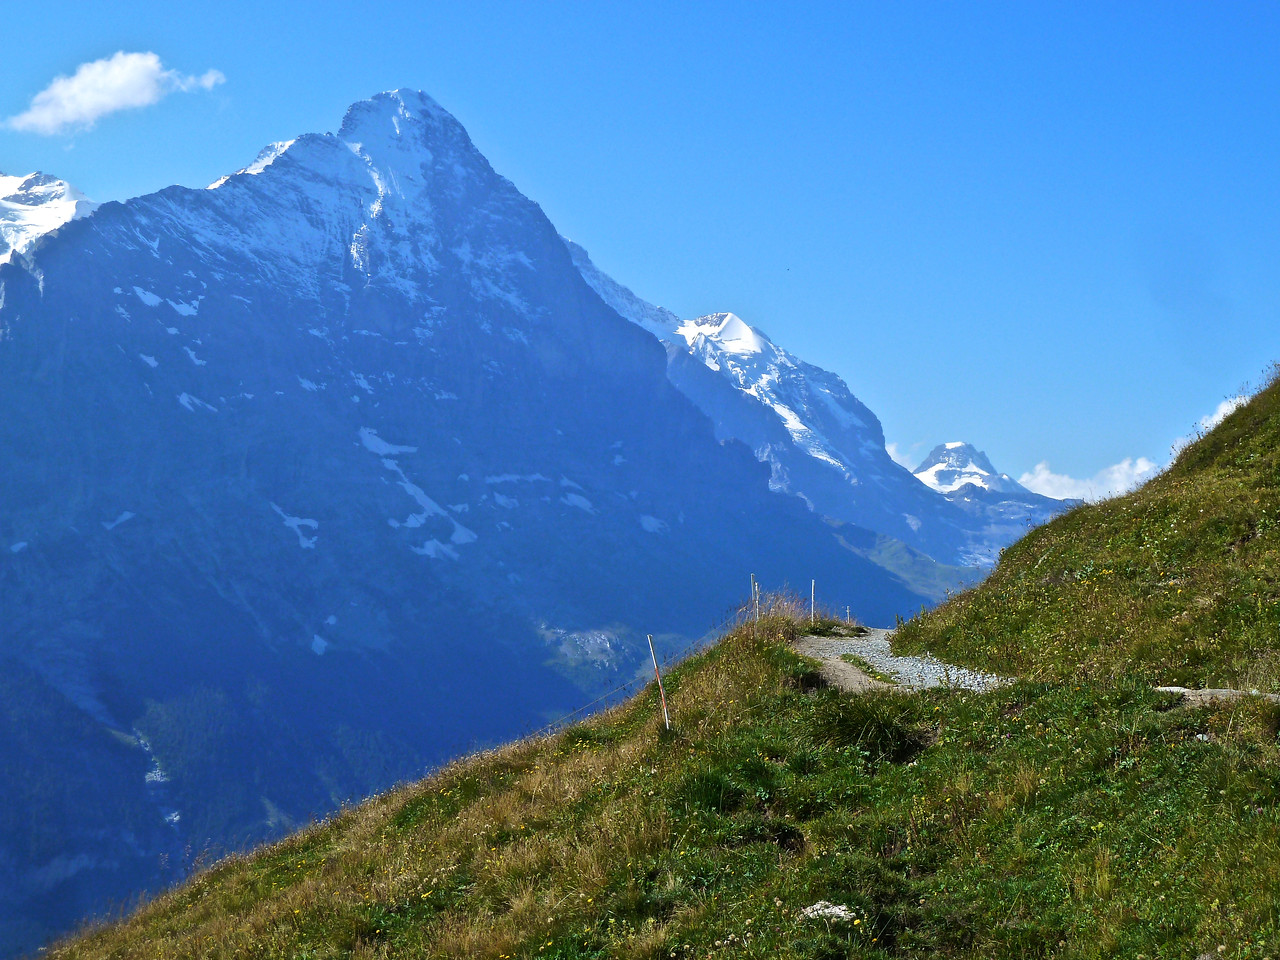 The Eiger with its notorious North Face to the right of the upper snowy area! The Jungfrau just to the right of the Eiger! The Mönch is hidden between Eiger and Jungfrau!